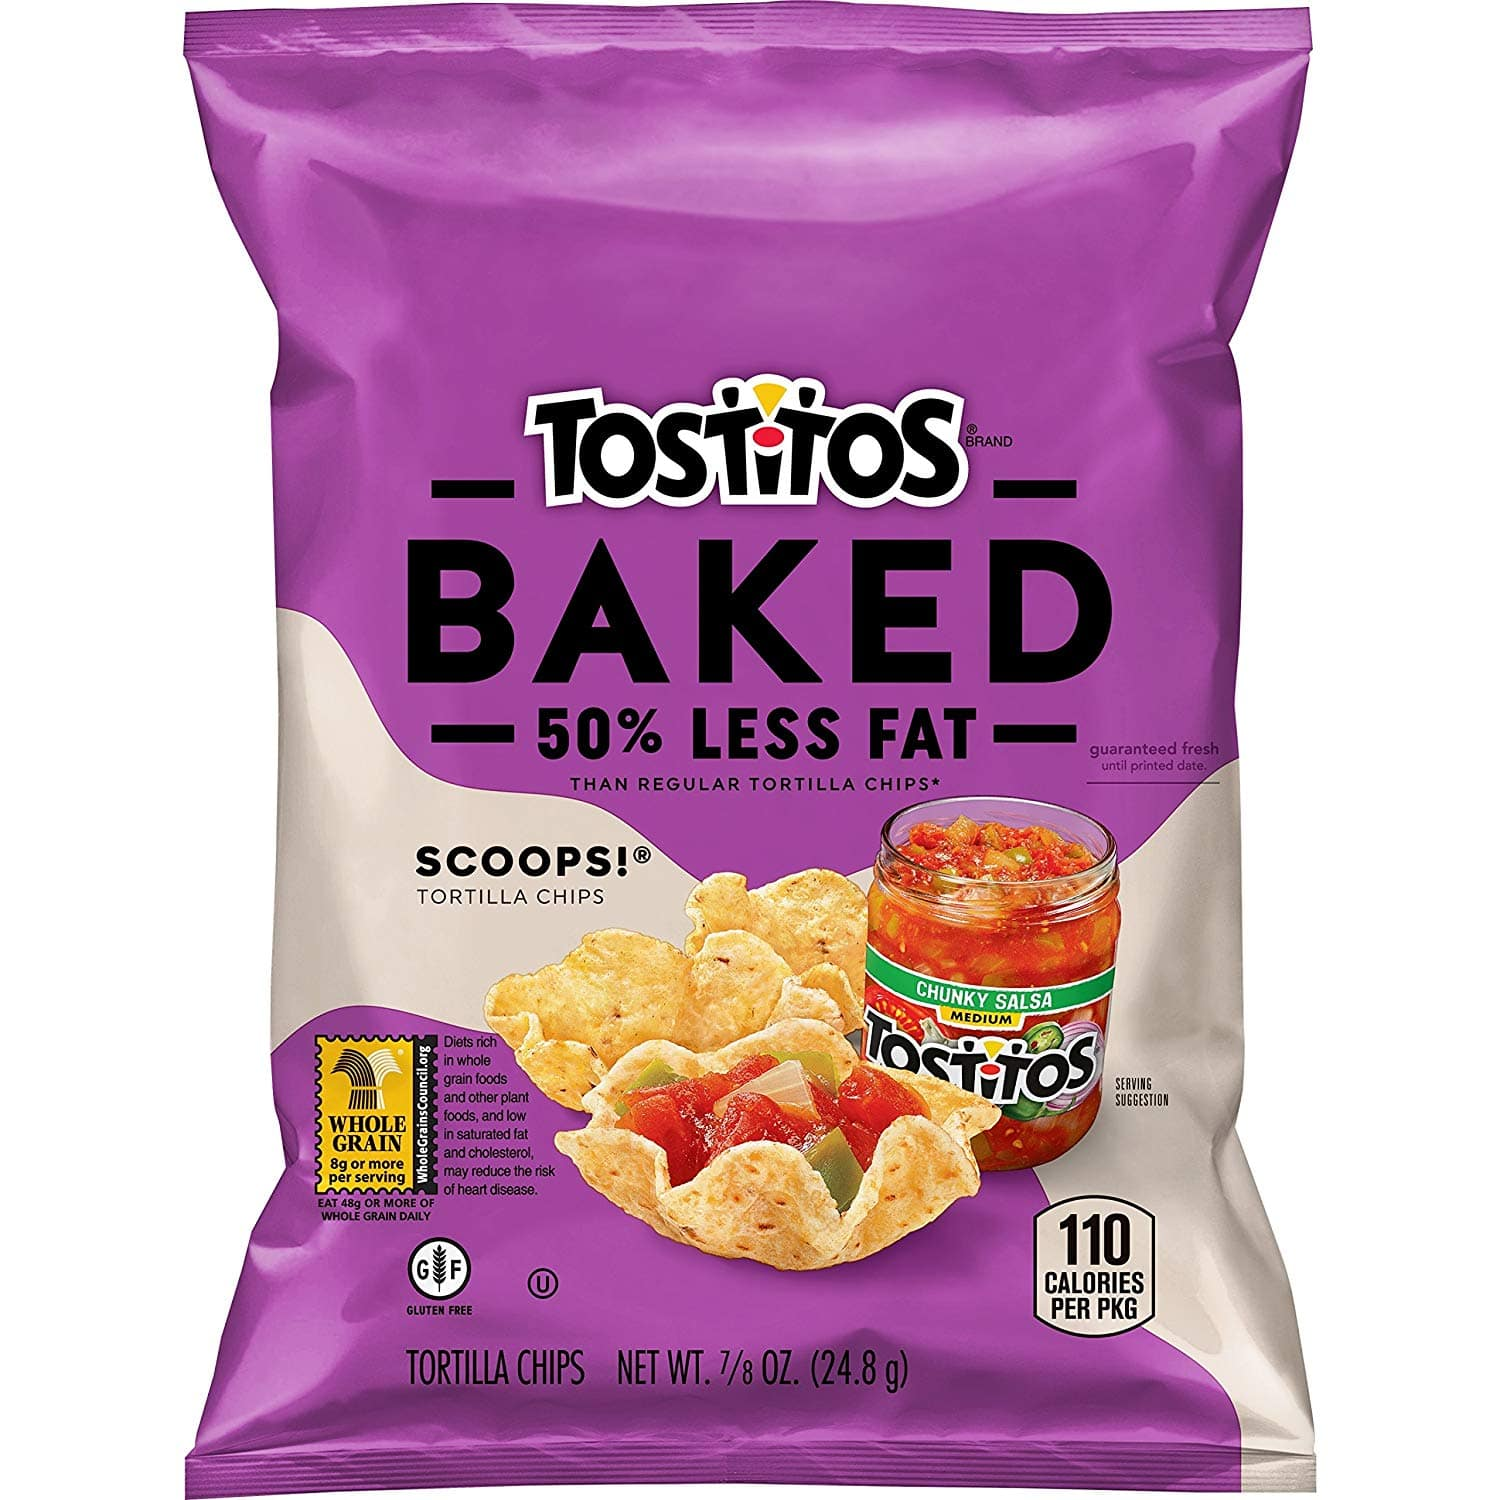 72 ct - BAKED Tostitos Oven Baked Scoops Tortilla Chips, $27.14 after coupon with Subscribe and Save at Amazon